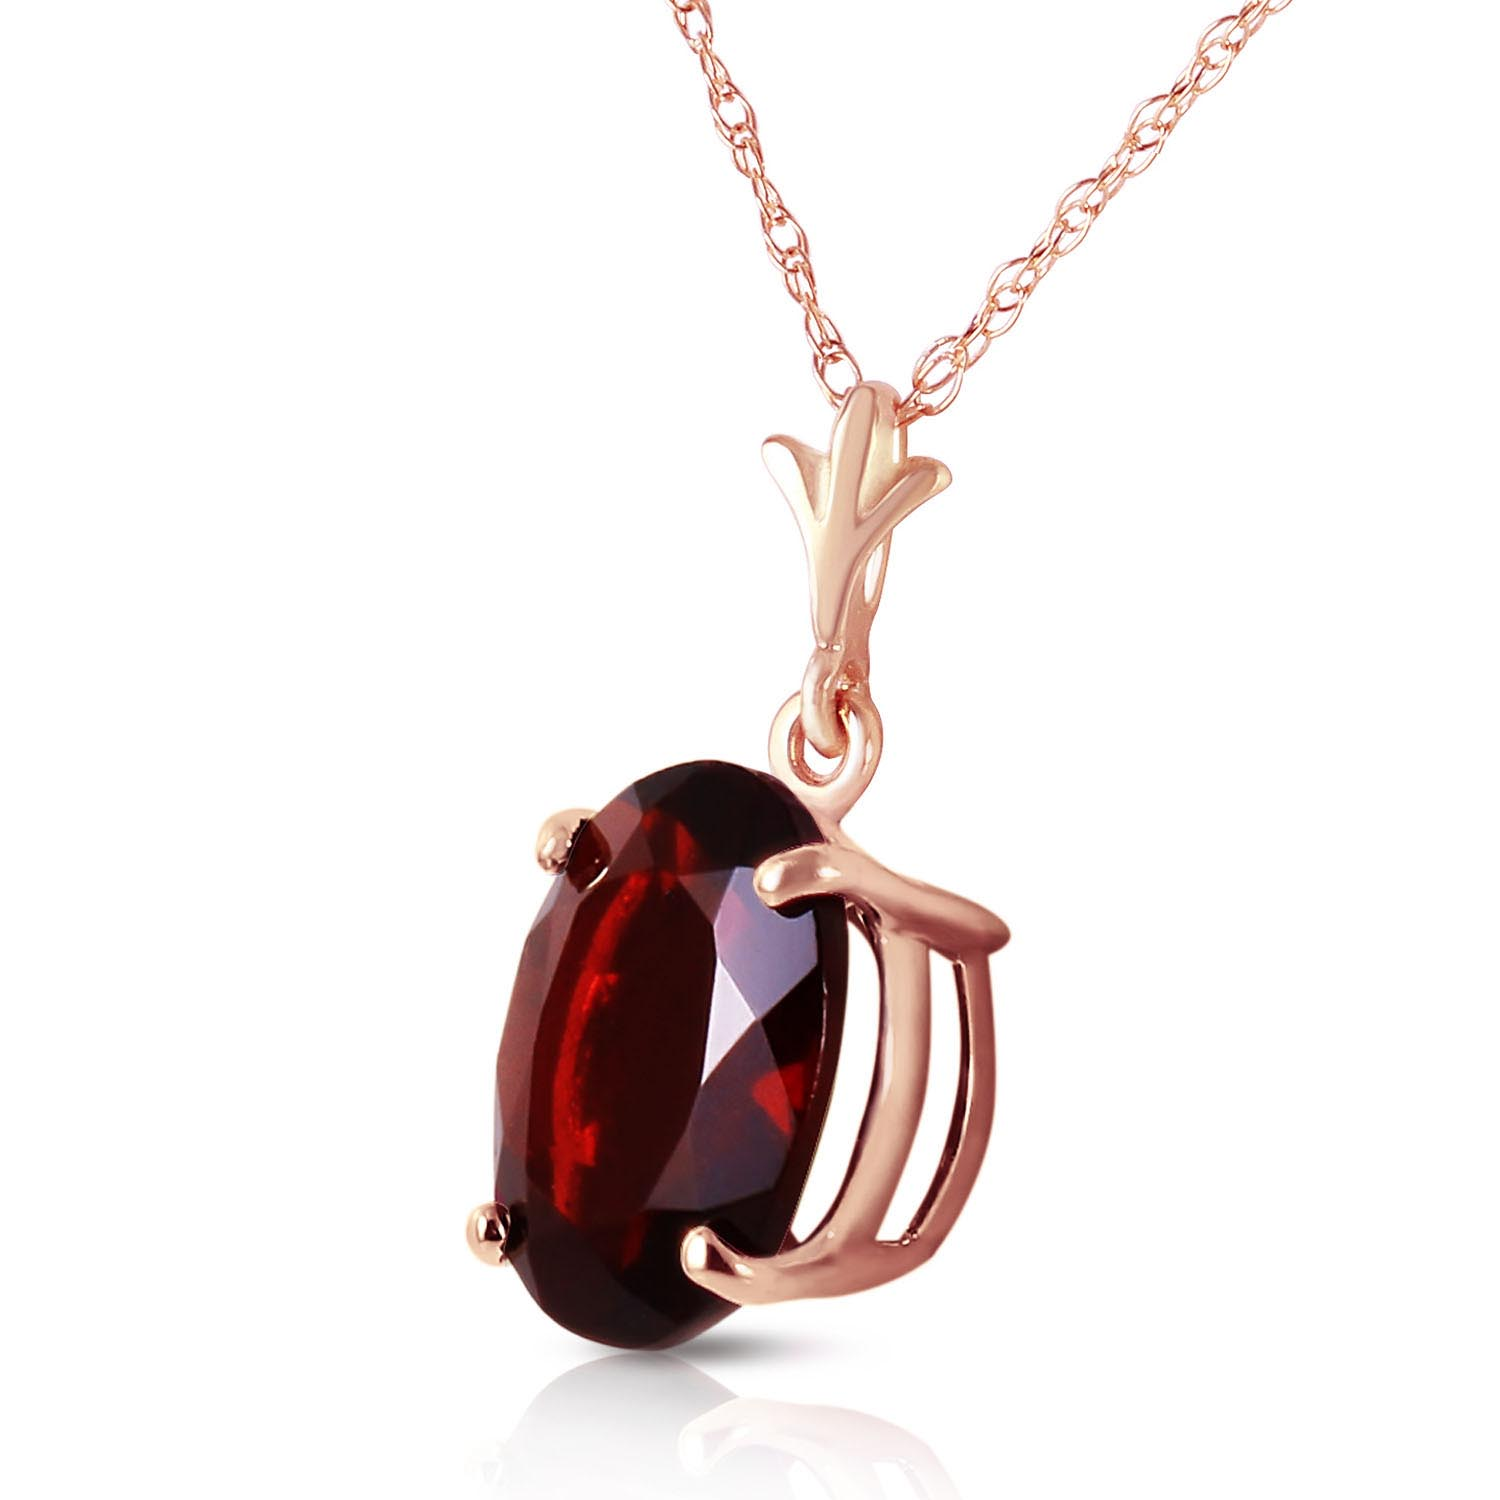 Oval Cut Garnet Pendant Necklace 3.12ct in 9ct Rose Gold